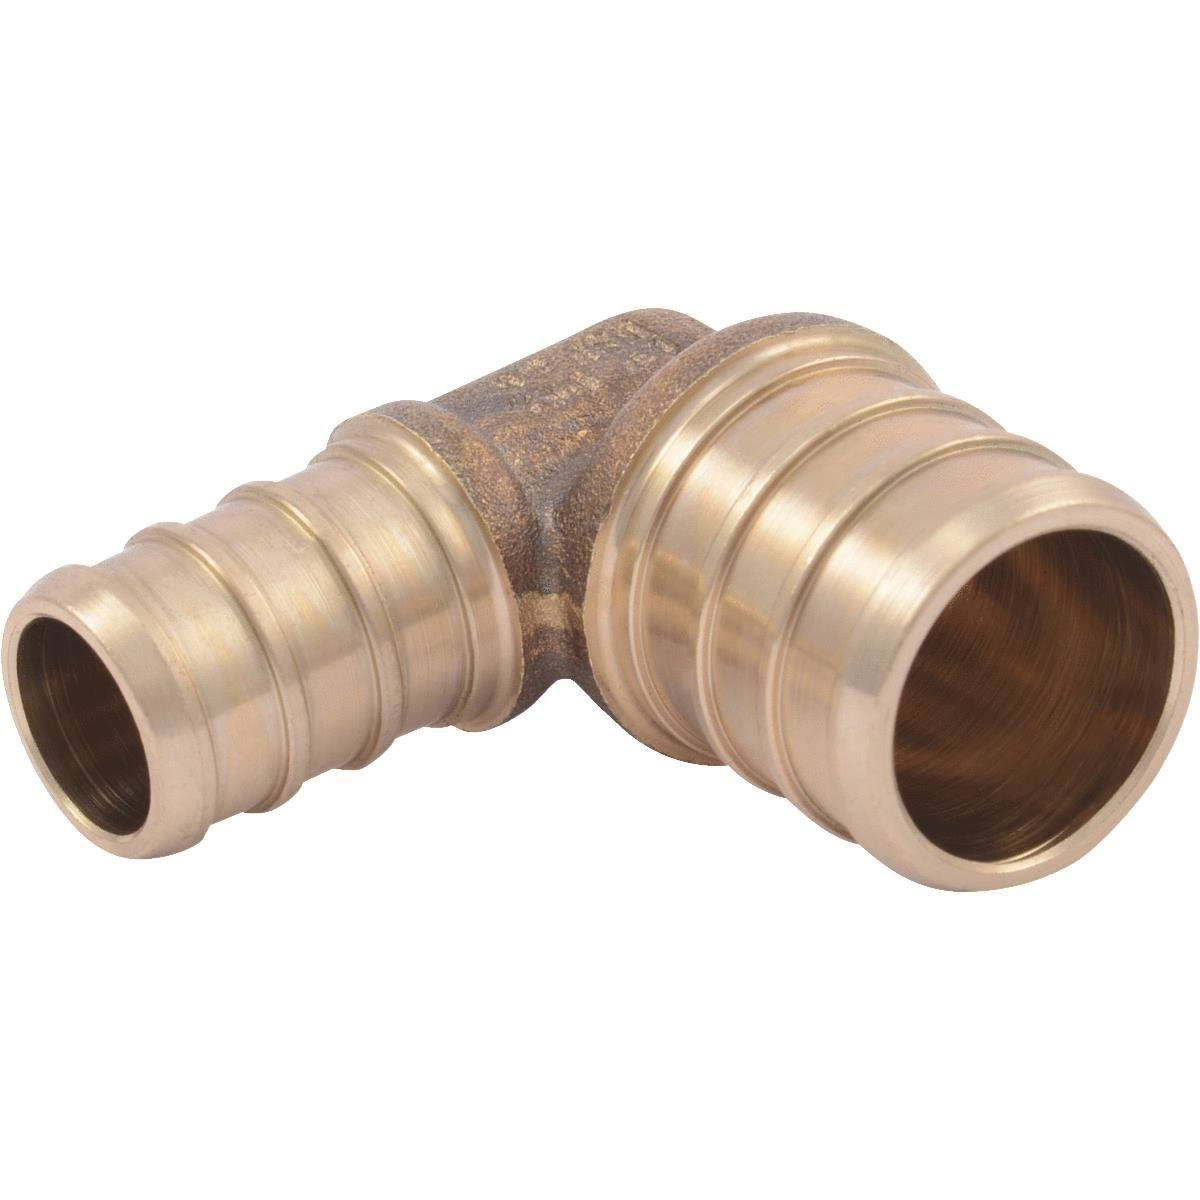 "Cash Acme Reducing Pex Elbow - 3/4"" x 1/2"""